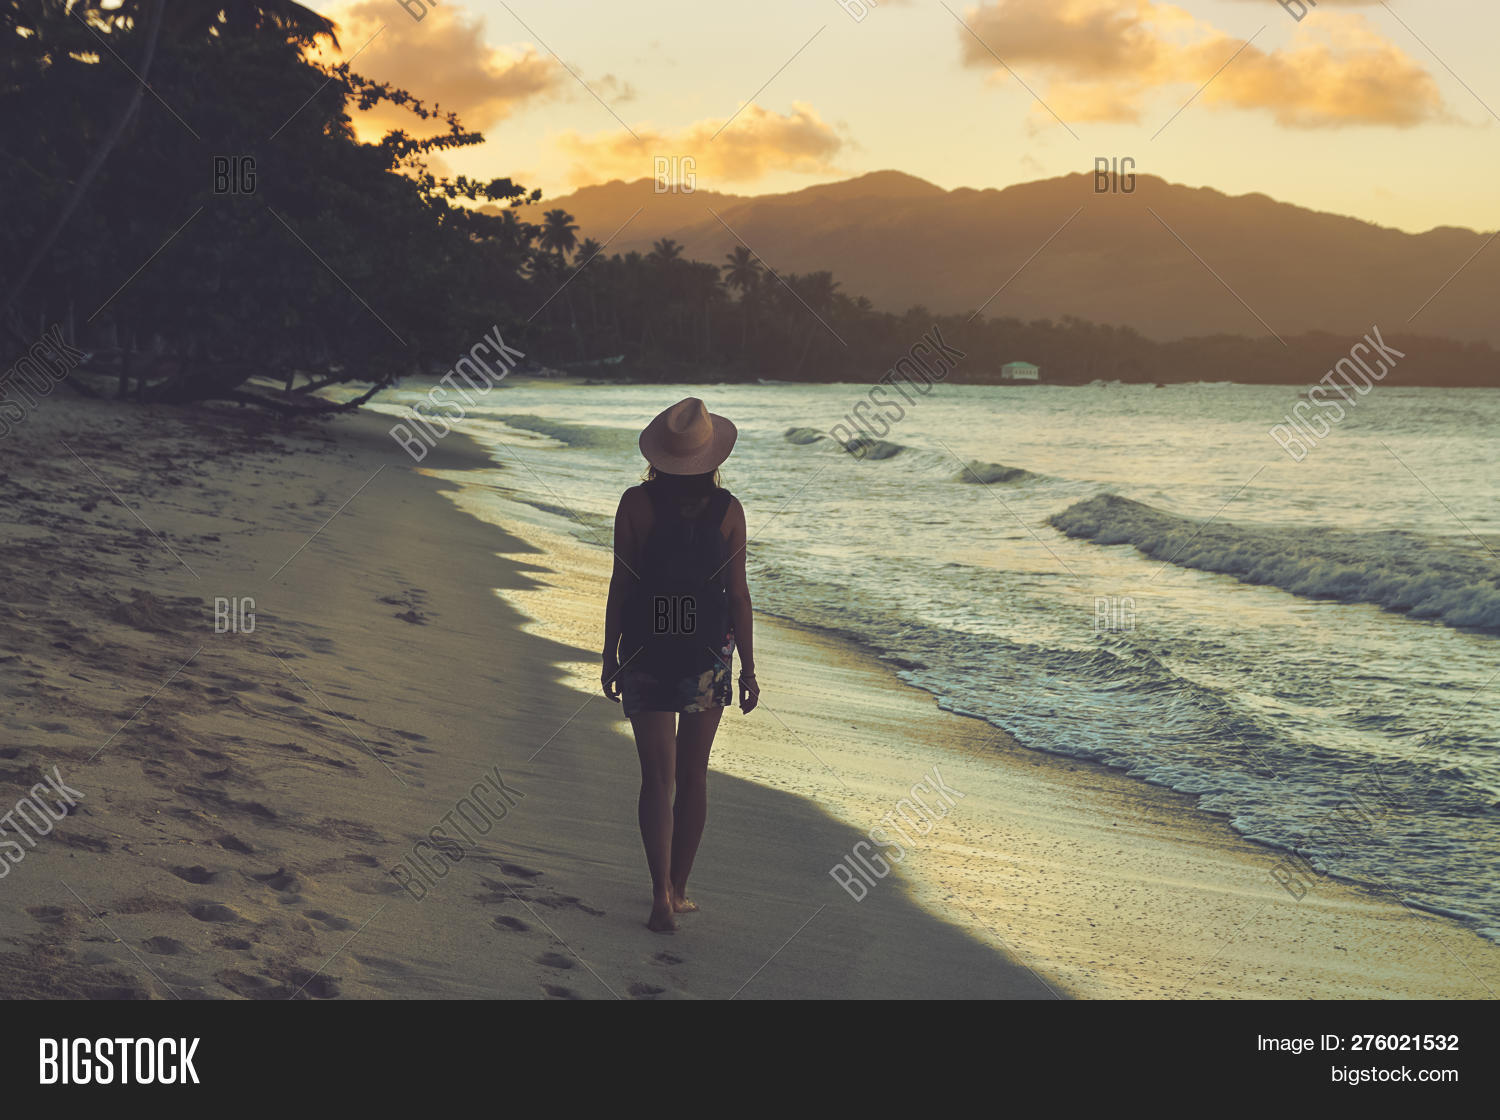 Traveler Girl Walking On Tropical Beach In Sunset. Vintage Photo Of Young Girl Traveler In Vacation.